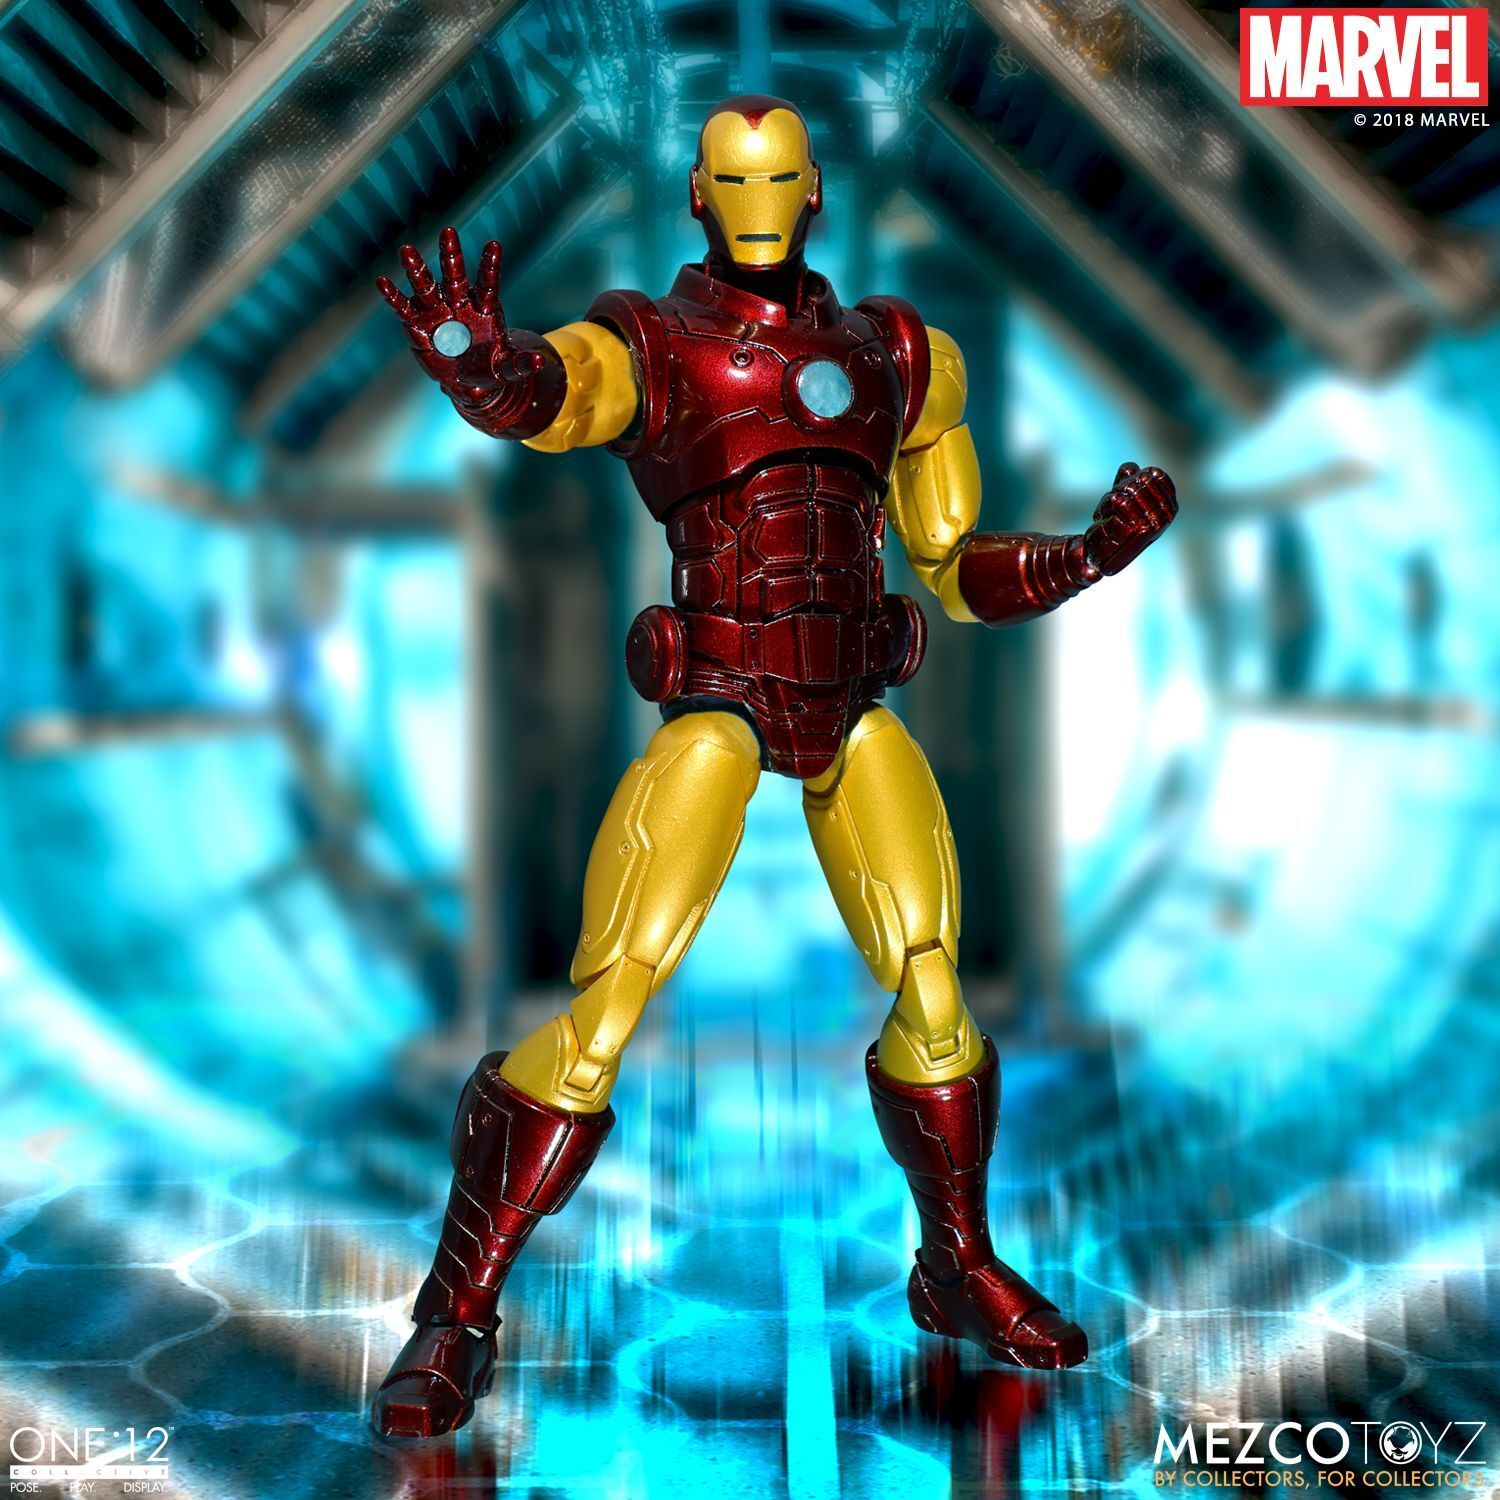 Mezco One 12 Collective Iron Man Action FIgure IN STOCK USA